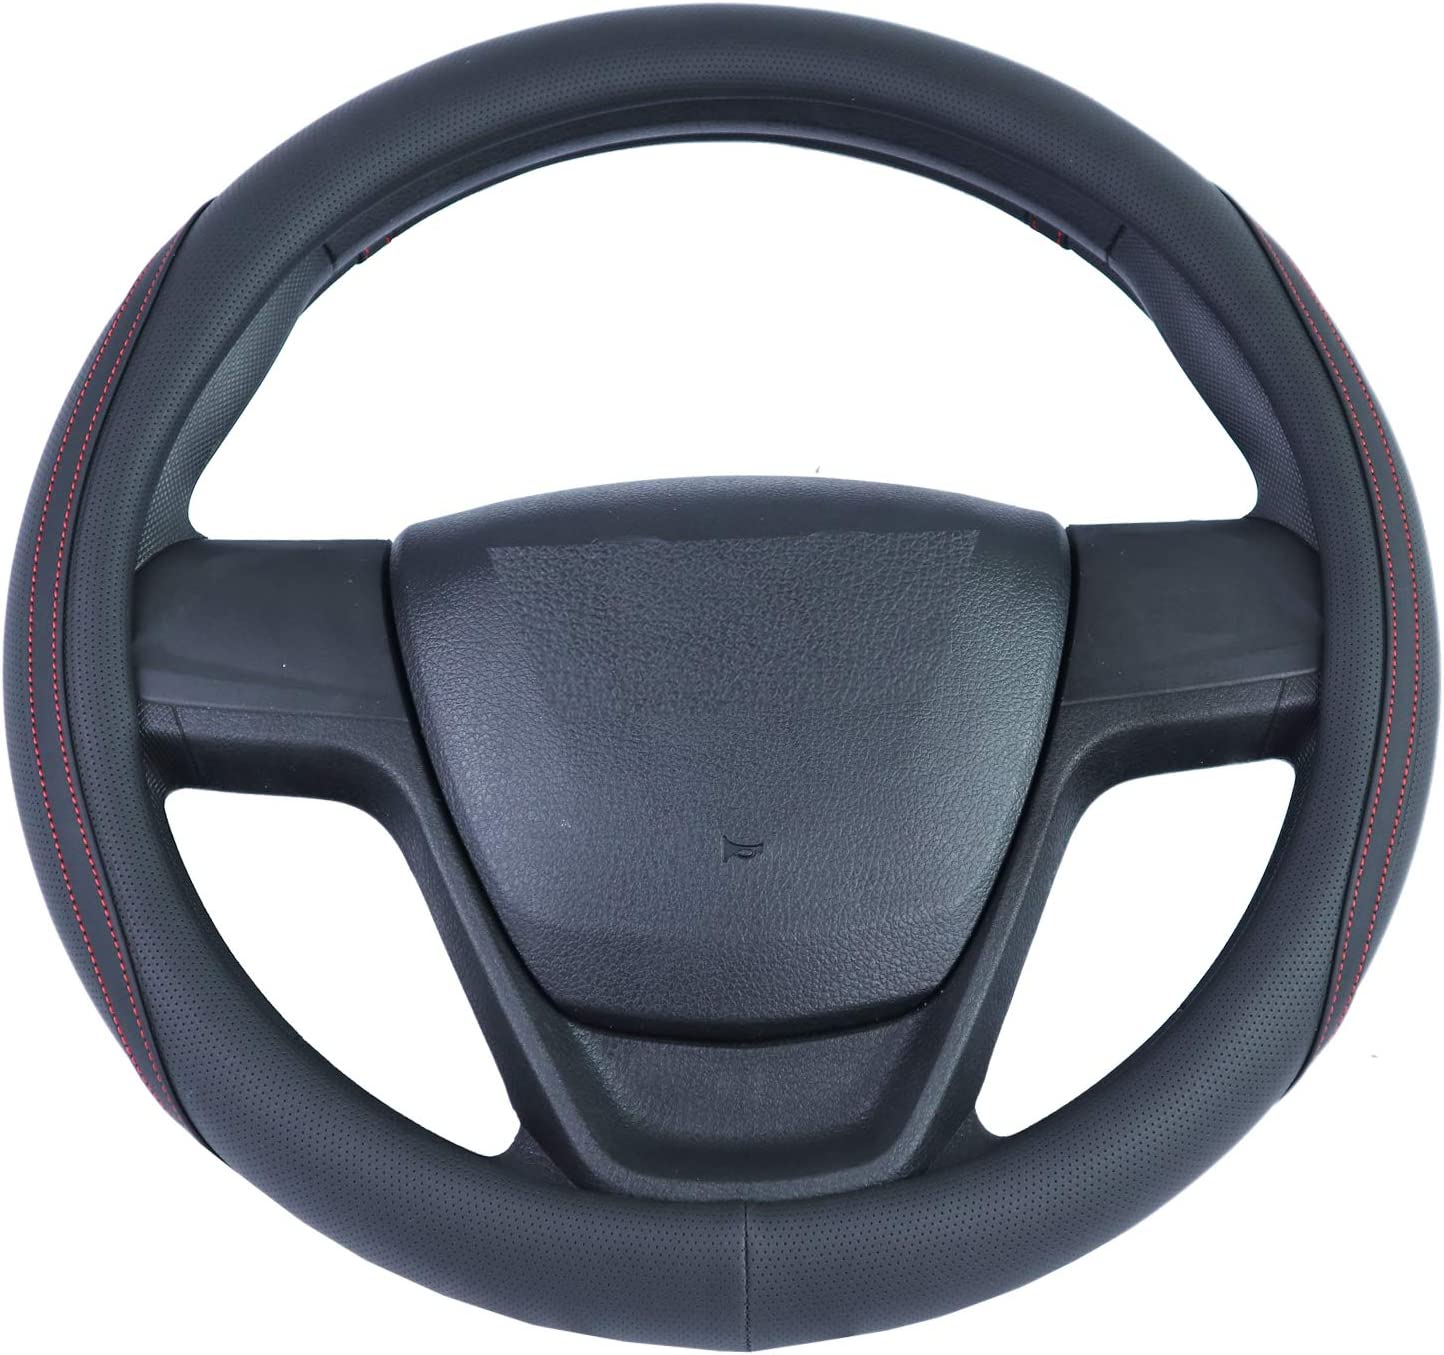 Outon Microfiber Leather Universal Car Steering Wheel Cover 37-38cm//14.5-15inch Black